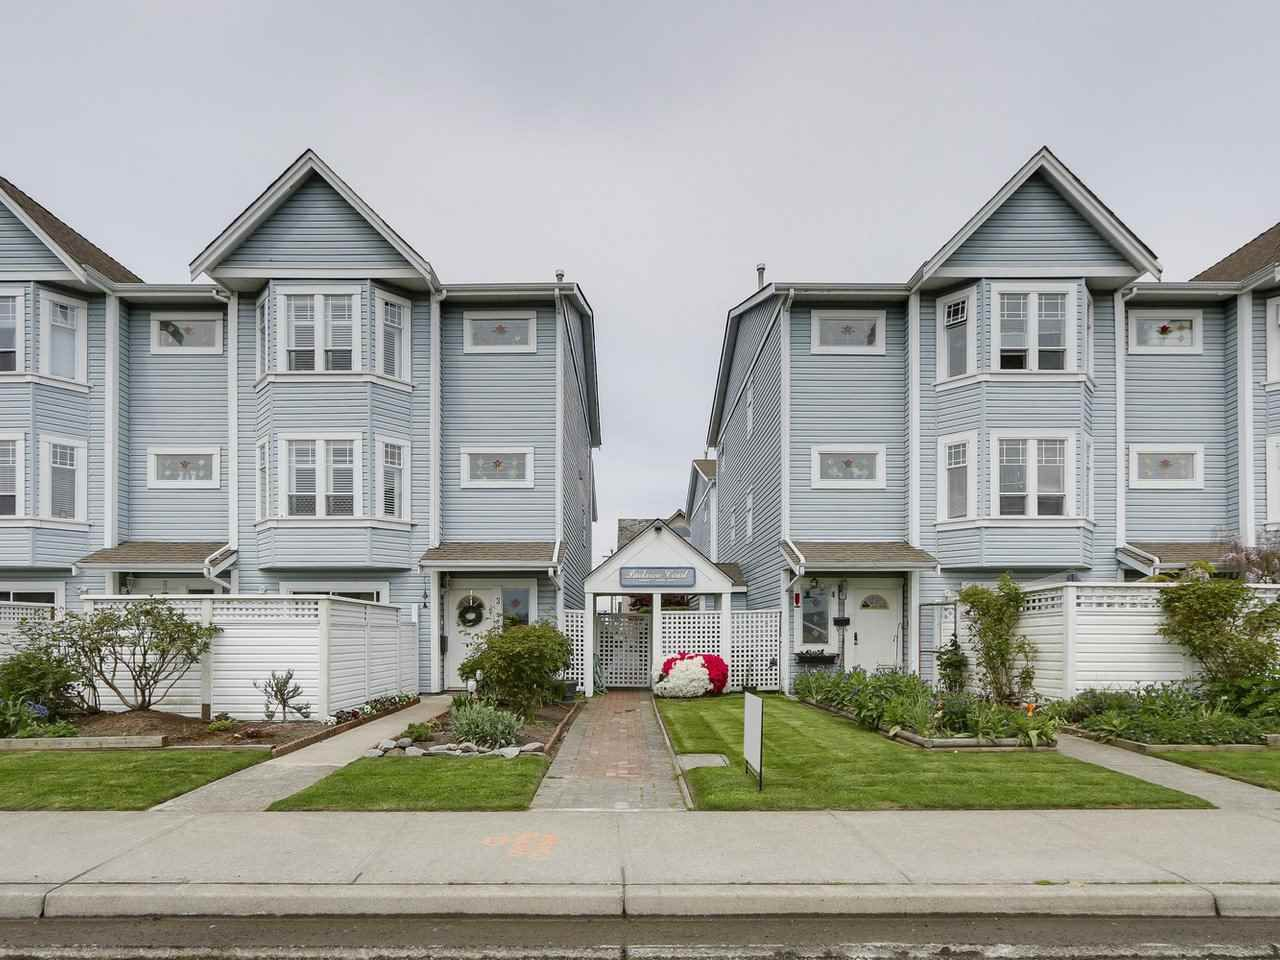 "Main Photo: 7 4965 47 Avenue in Delta: Ladner Elementary Townhouse for sale in ""PARKVIEW COURT"" (Ladner)  : MLS®# R2163588"